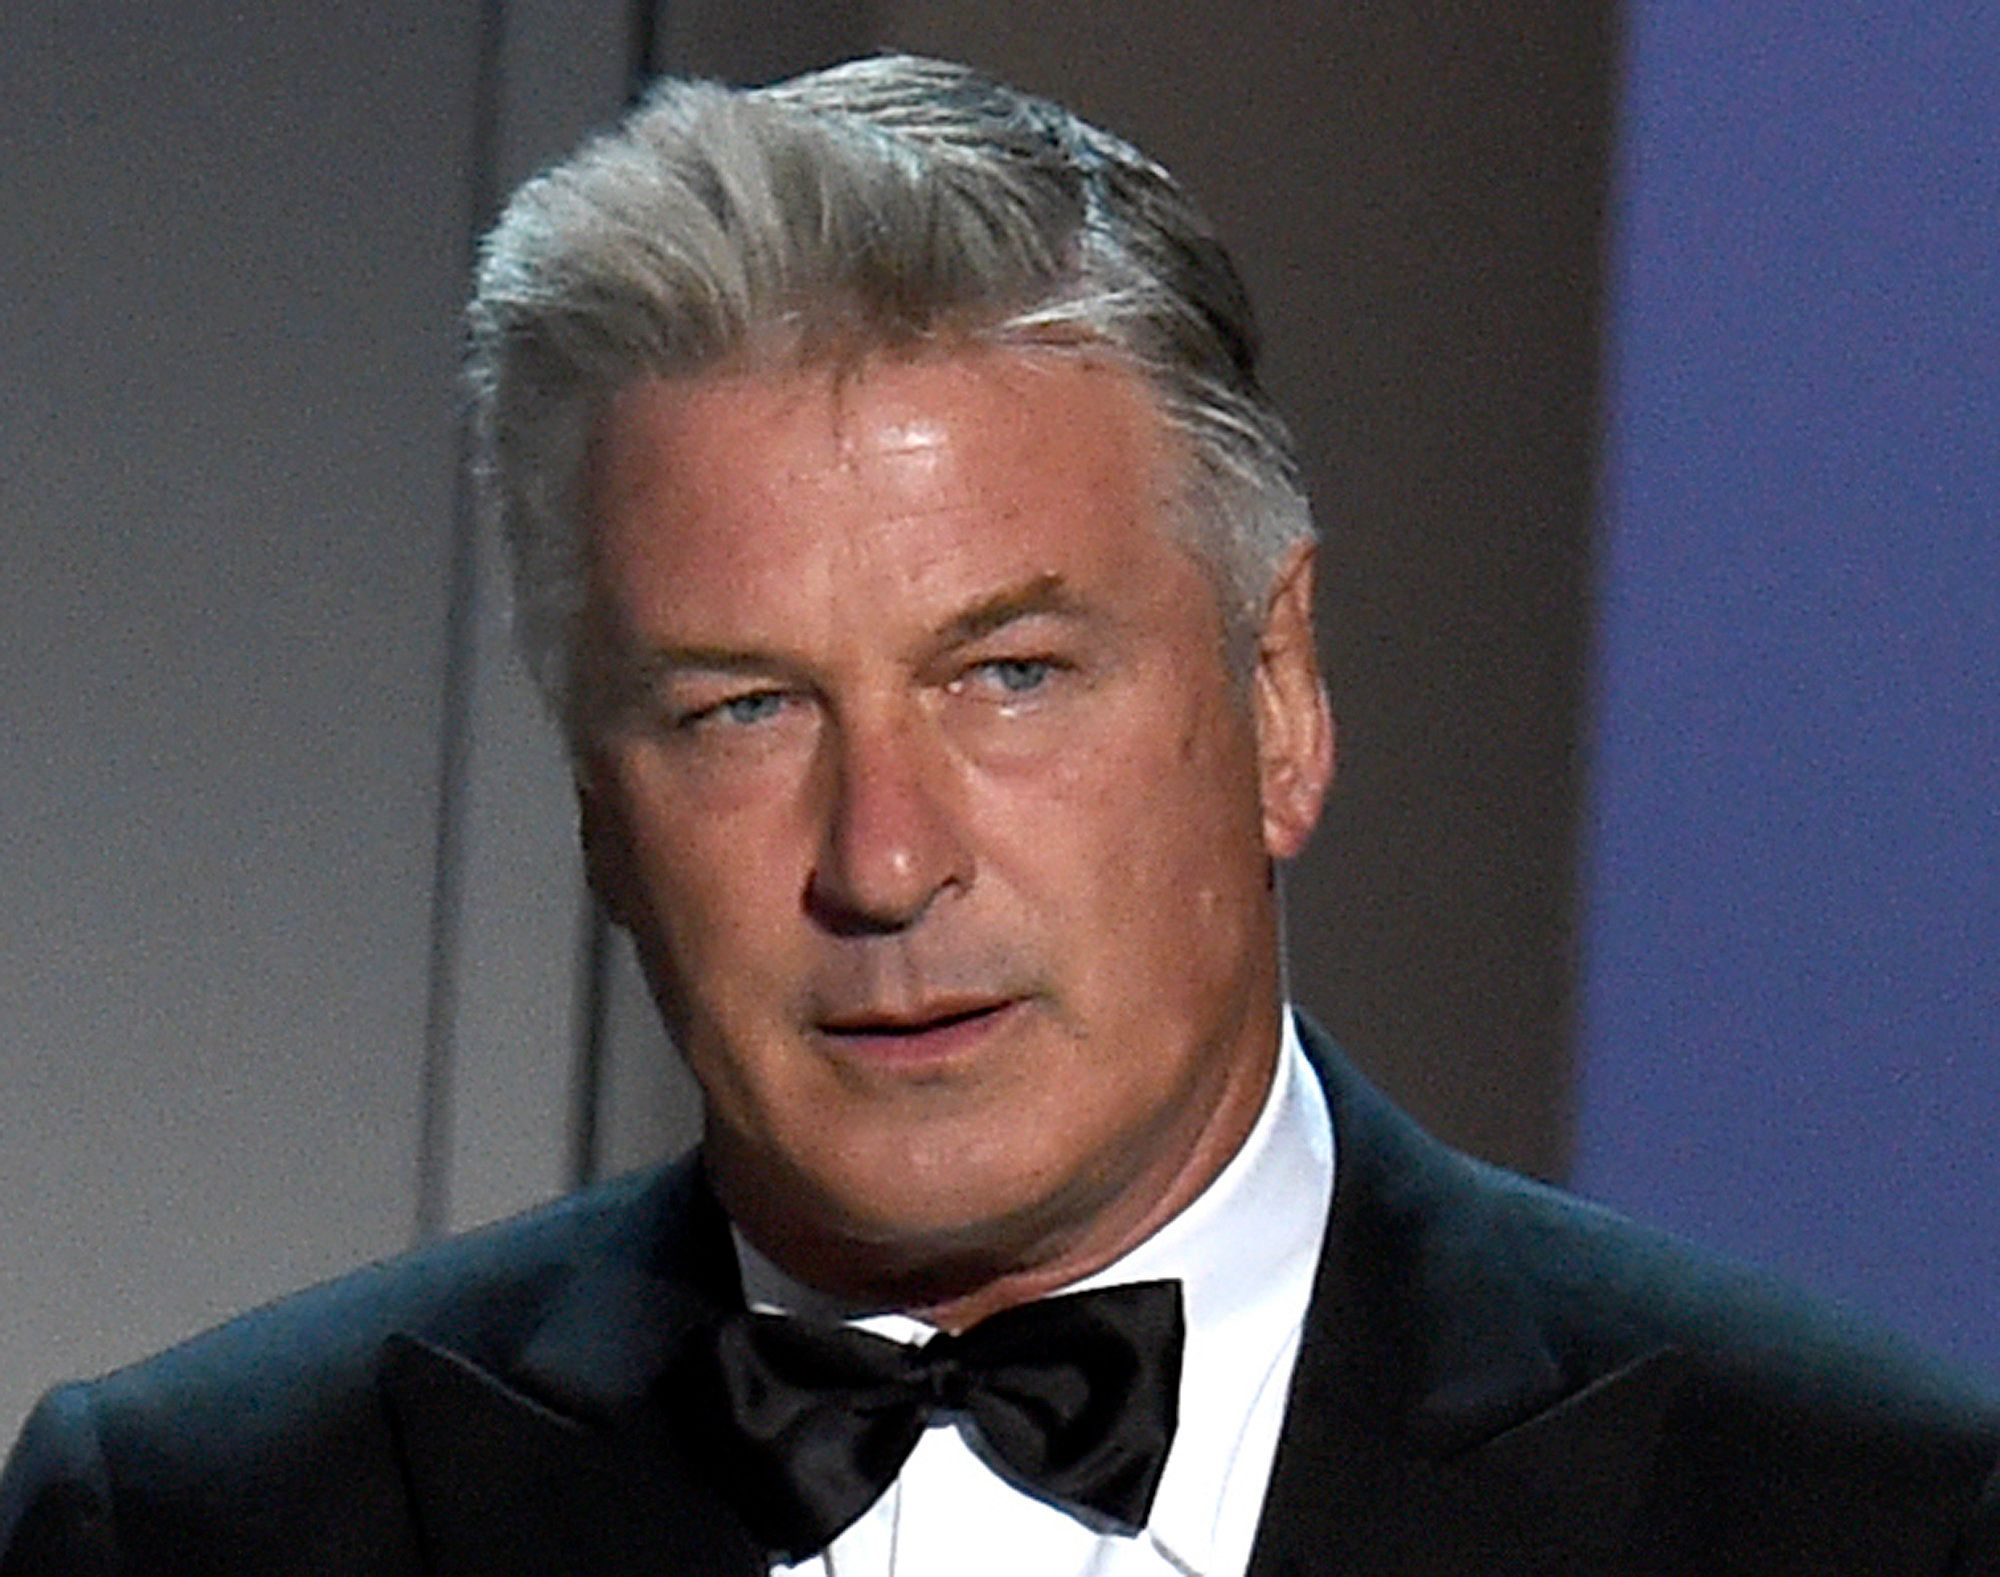 "FILE - In this Sept. 17, 2018, file photo, Alec Baldwin speaks at the 70th Primetime Emmy Awards at the Microsoft Theater in Los Angeles. Baldwin, who won an Emmy in 2017 for his portrayal of President Donald Trump on ""Saturday Night Live,"" will be the keynote speaker at the New Hampshire Democratic Party's annual fall fundraising dinner on Sunday, Oct. 14, in Manchester, N.H. (Photo by Chris Pizzello/Invision/AP, File)"